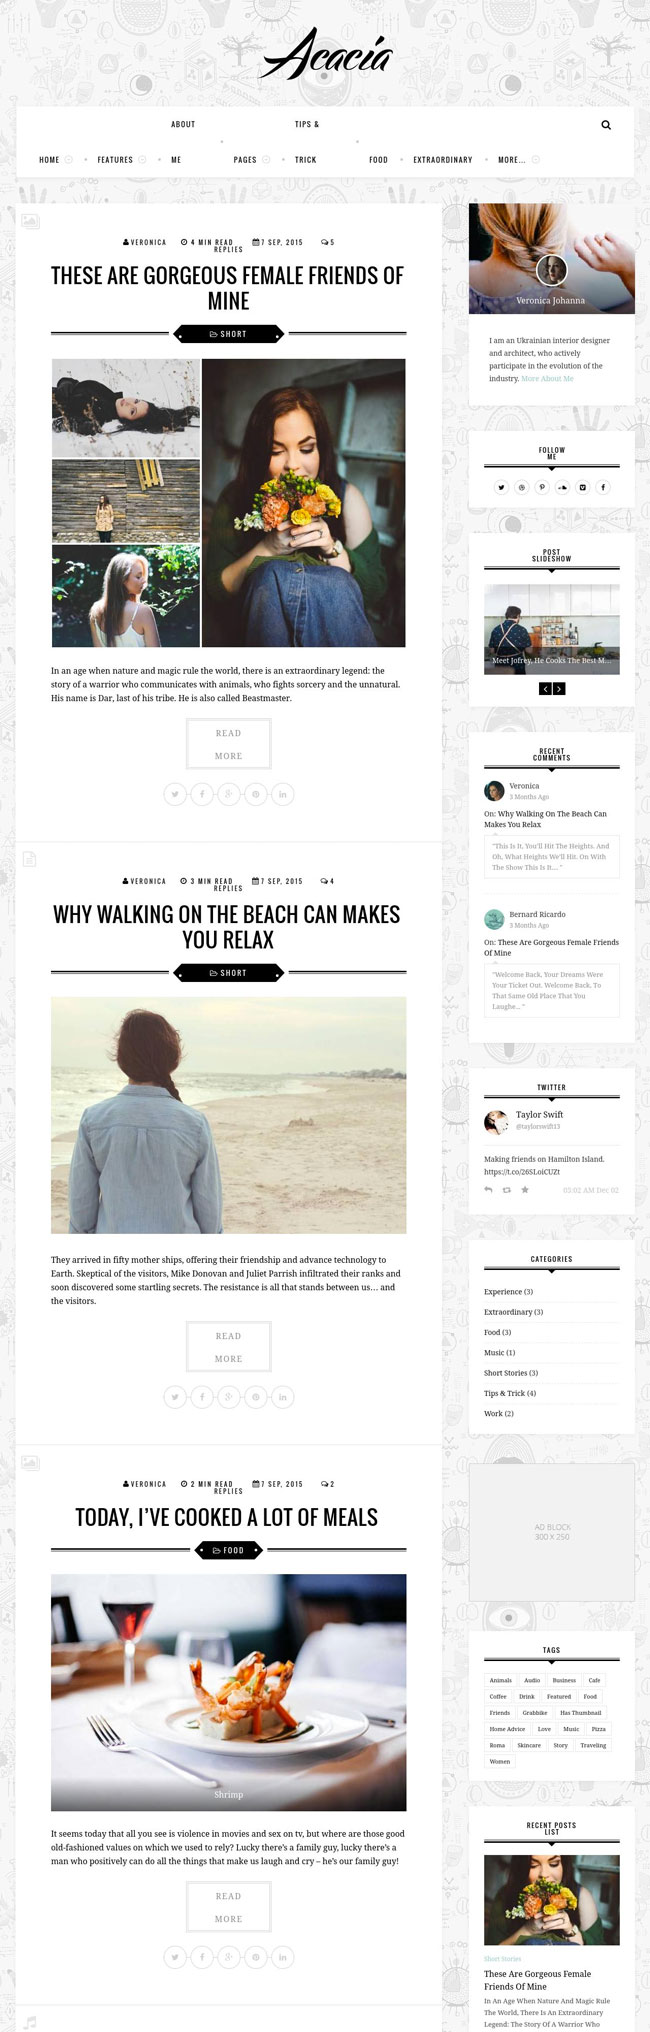 Acacia-Flat-and-Clean-WordPress-Blog-Theme